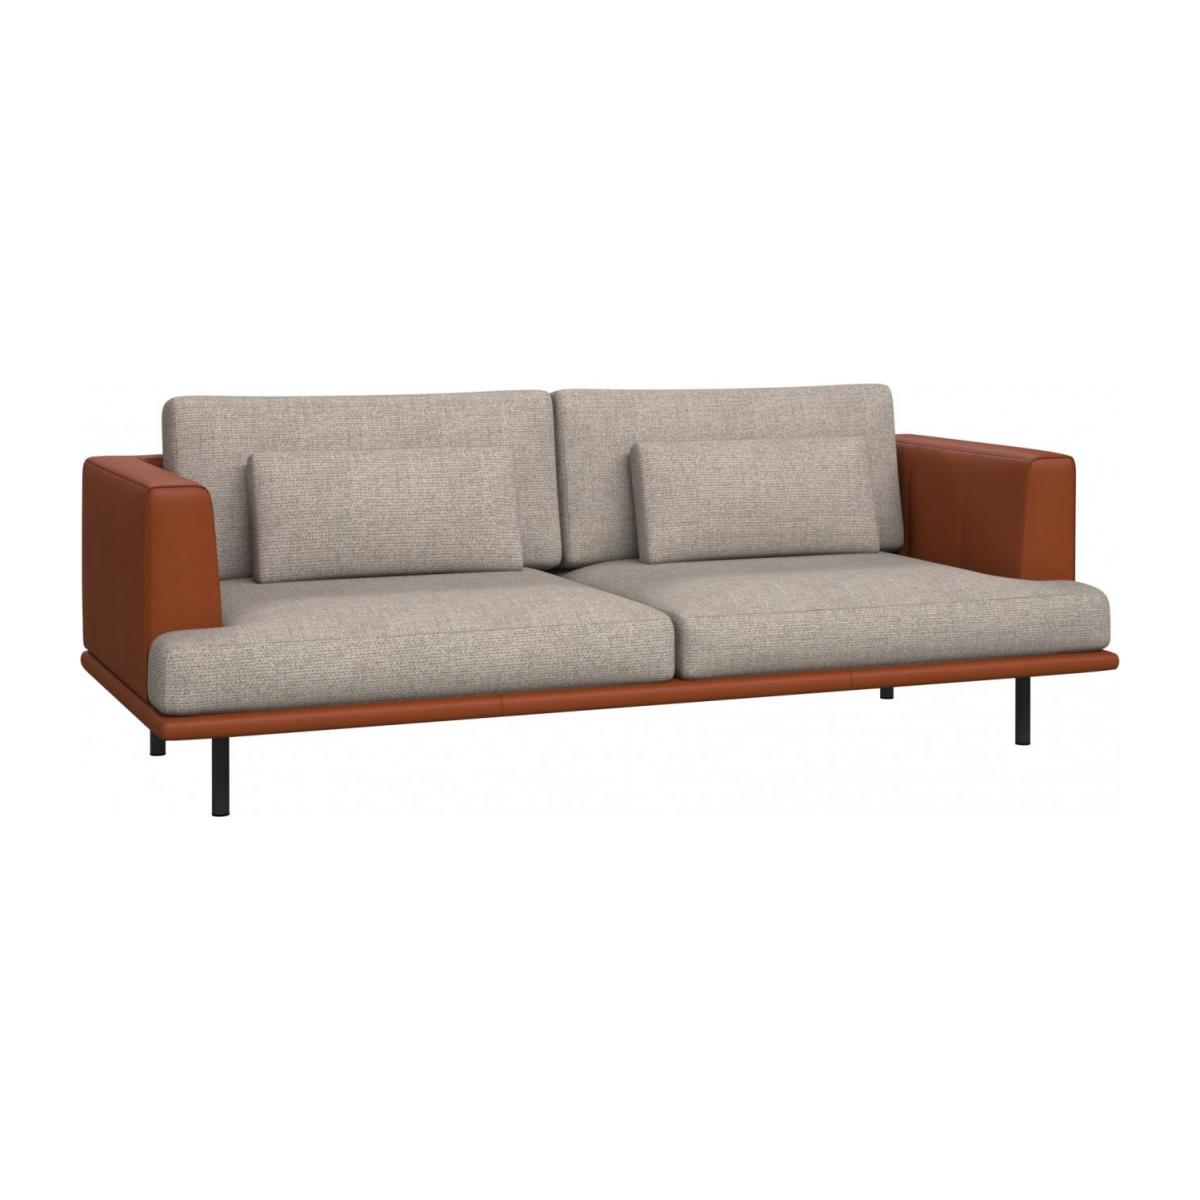 3 seater sofa in Lecce fabric, nature with base and armrests in brown leather n°1